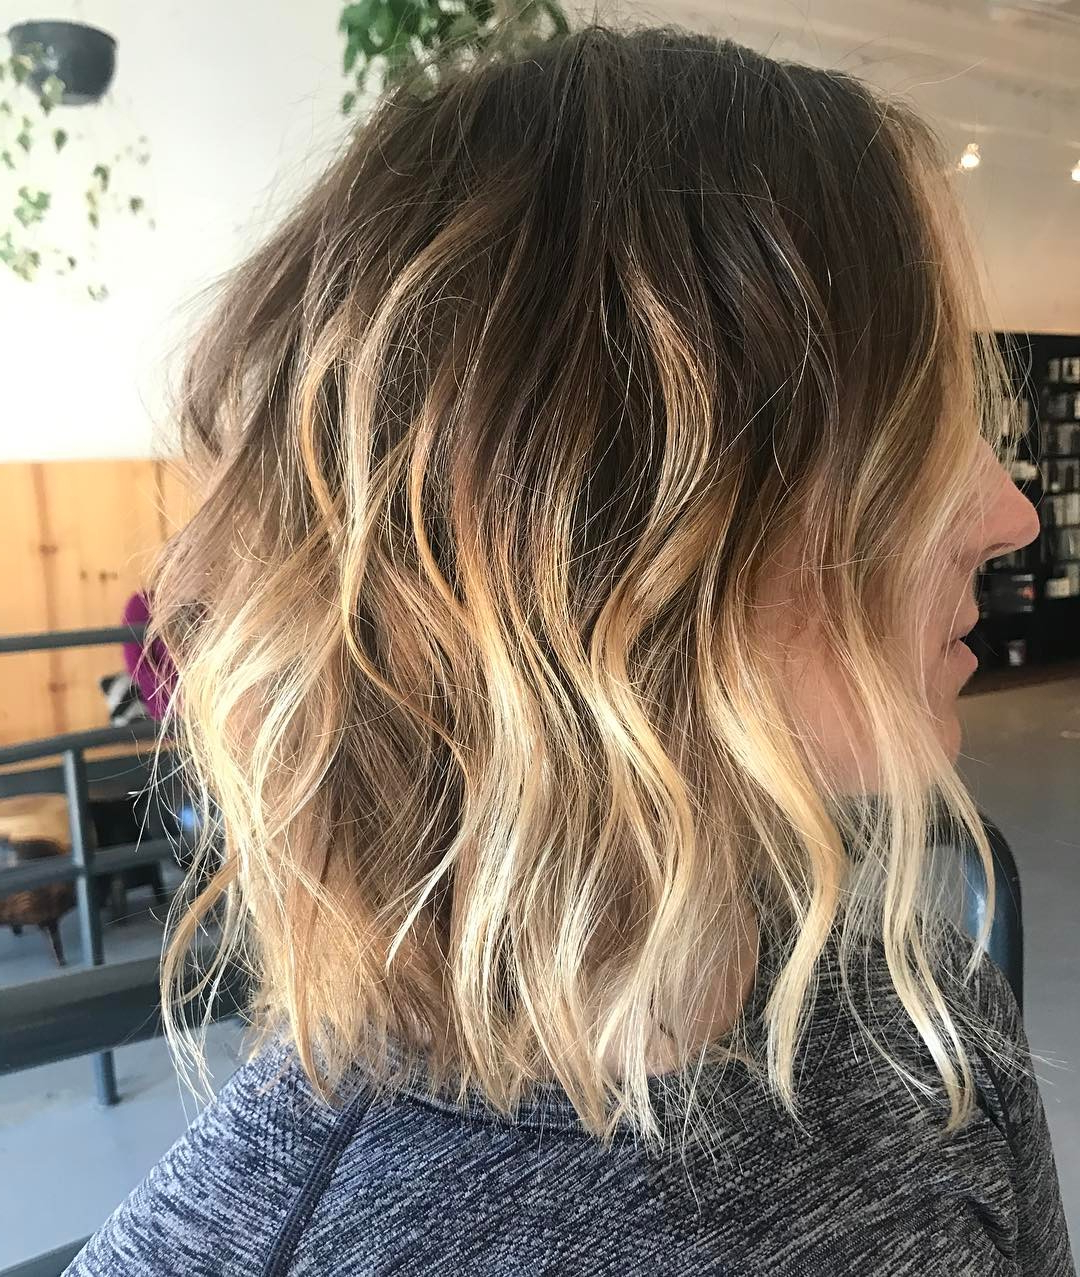 30 Chic Everyday Hairstyles For Shoulder Length Hair 2019 Pertaining To One Length Balayage Bob Hairstyles With Bangs (View 5 of 20)